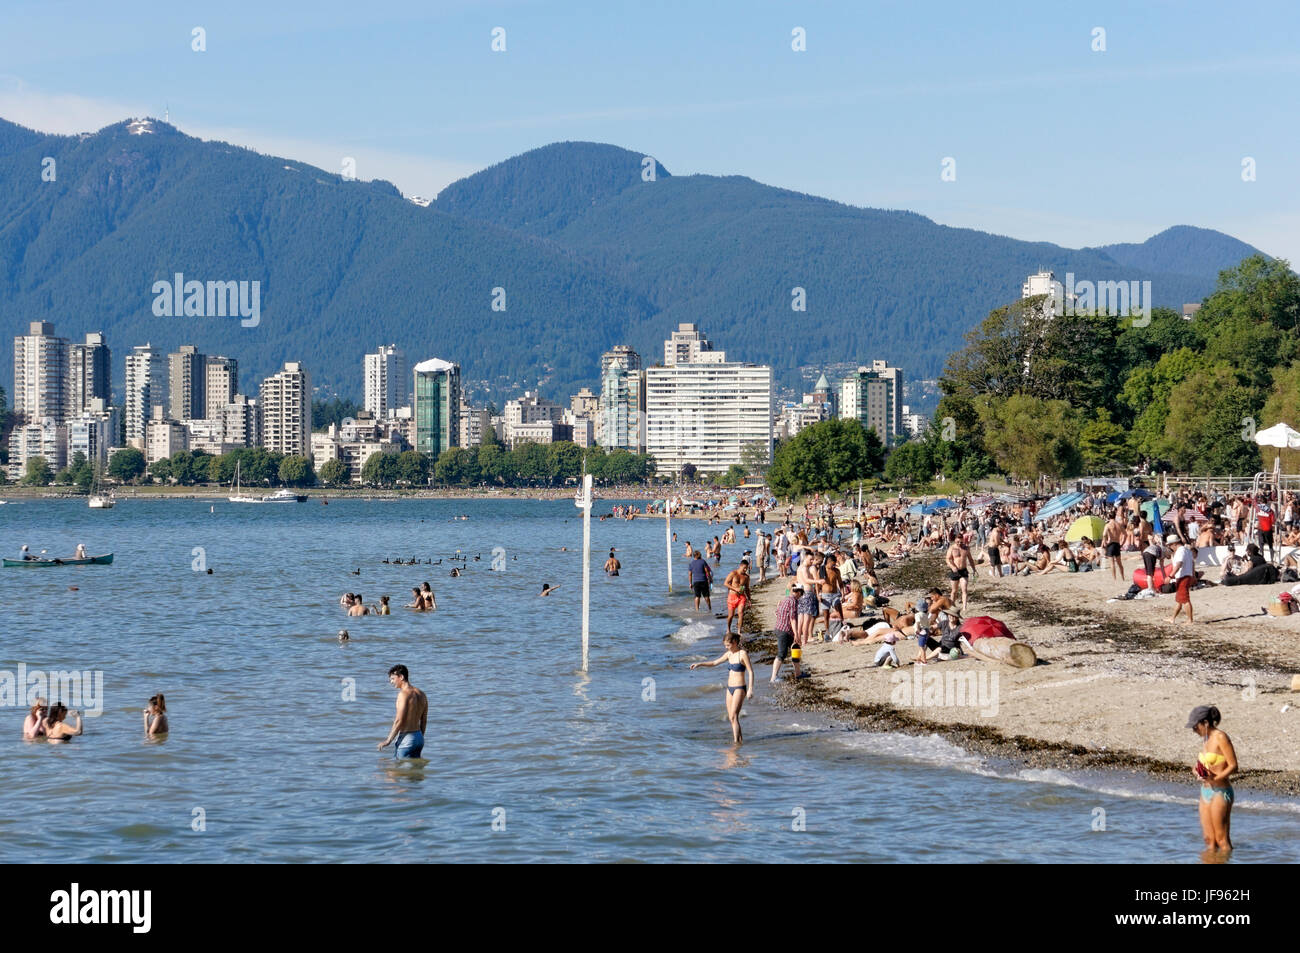 people-sunbathing-and-swimming-in-englis